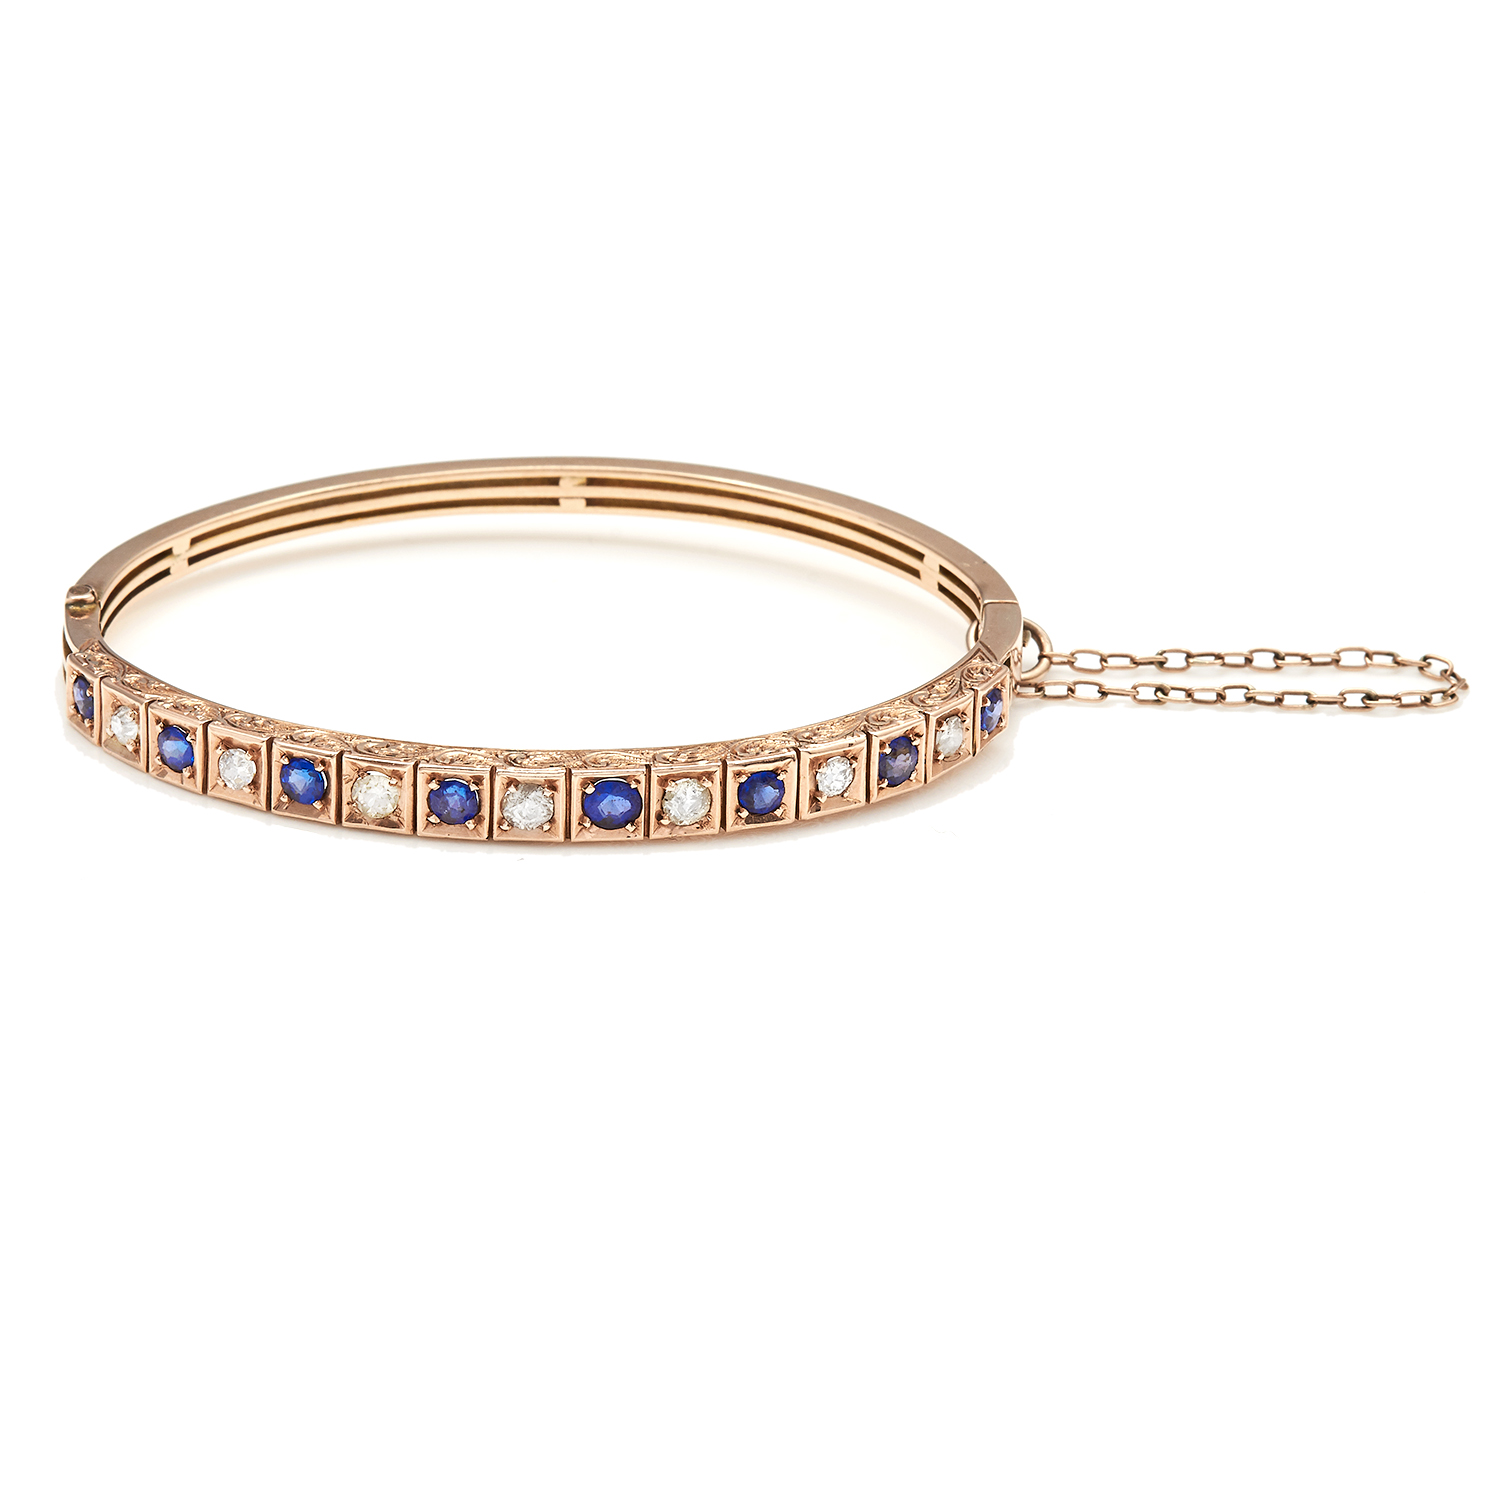 AN ANTIQUE SAPPHIRE AND DIAMOND BANGLE in 15ct yellow gold, a half hoop decorated with alternating